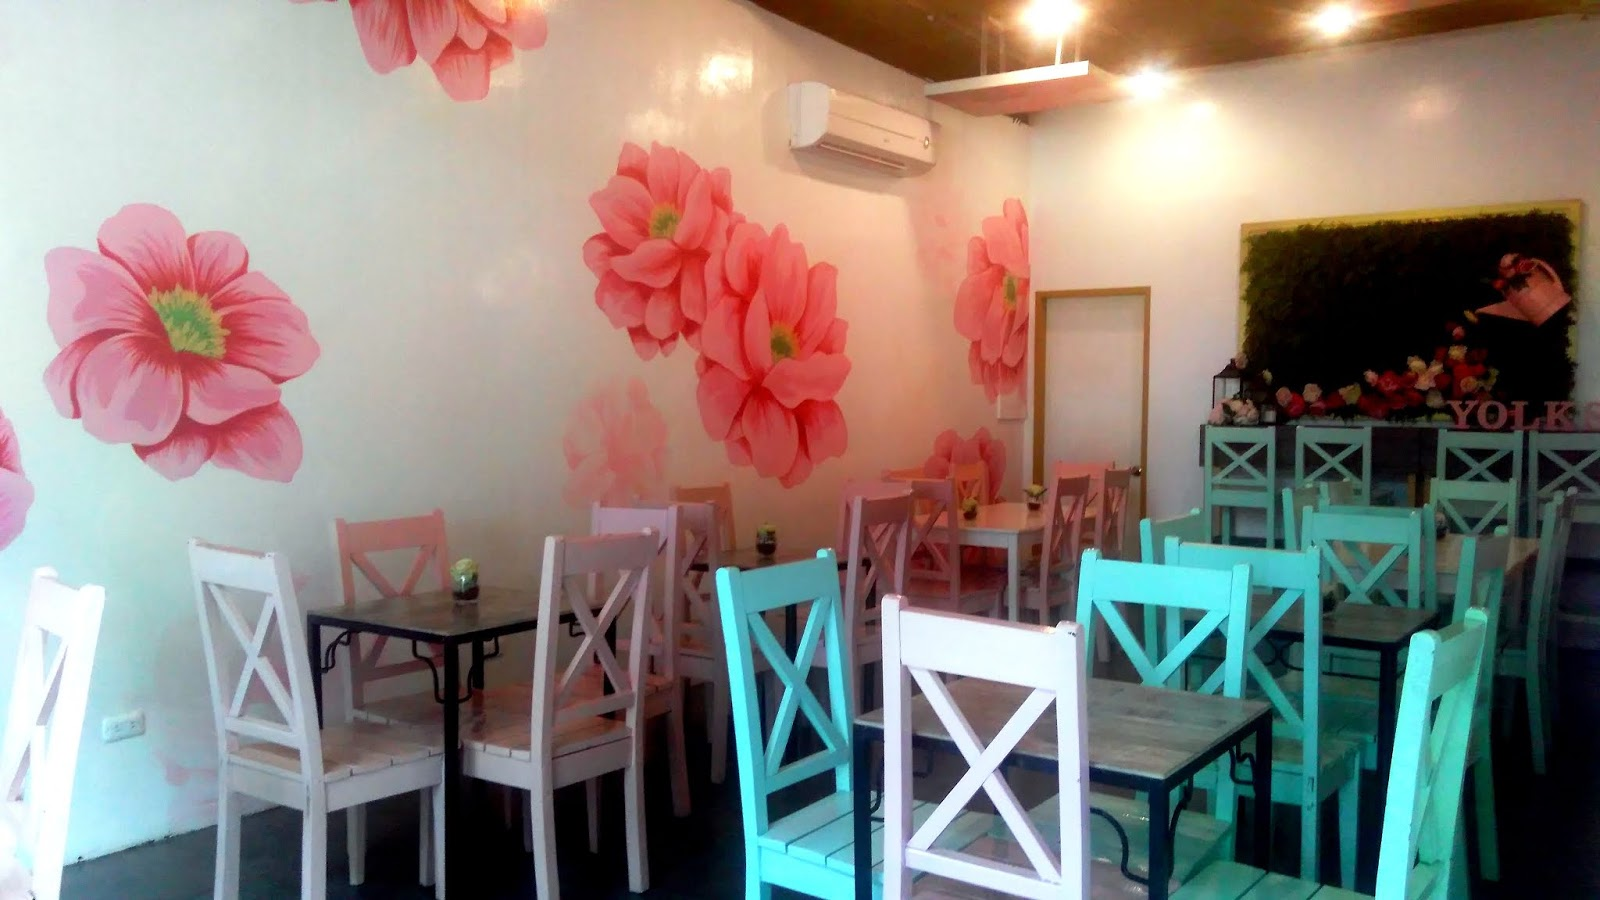 Yolks Flower Cafe + Cupcakery - Davao City  #YolksPh #MamaMiah #MommyBlogger